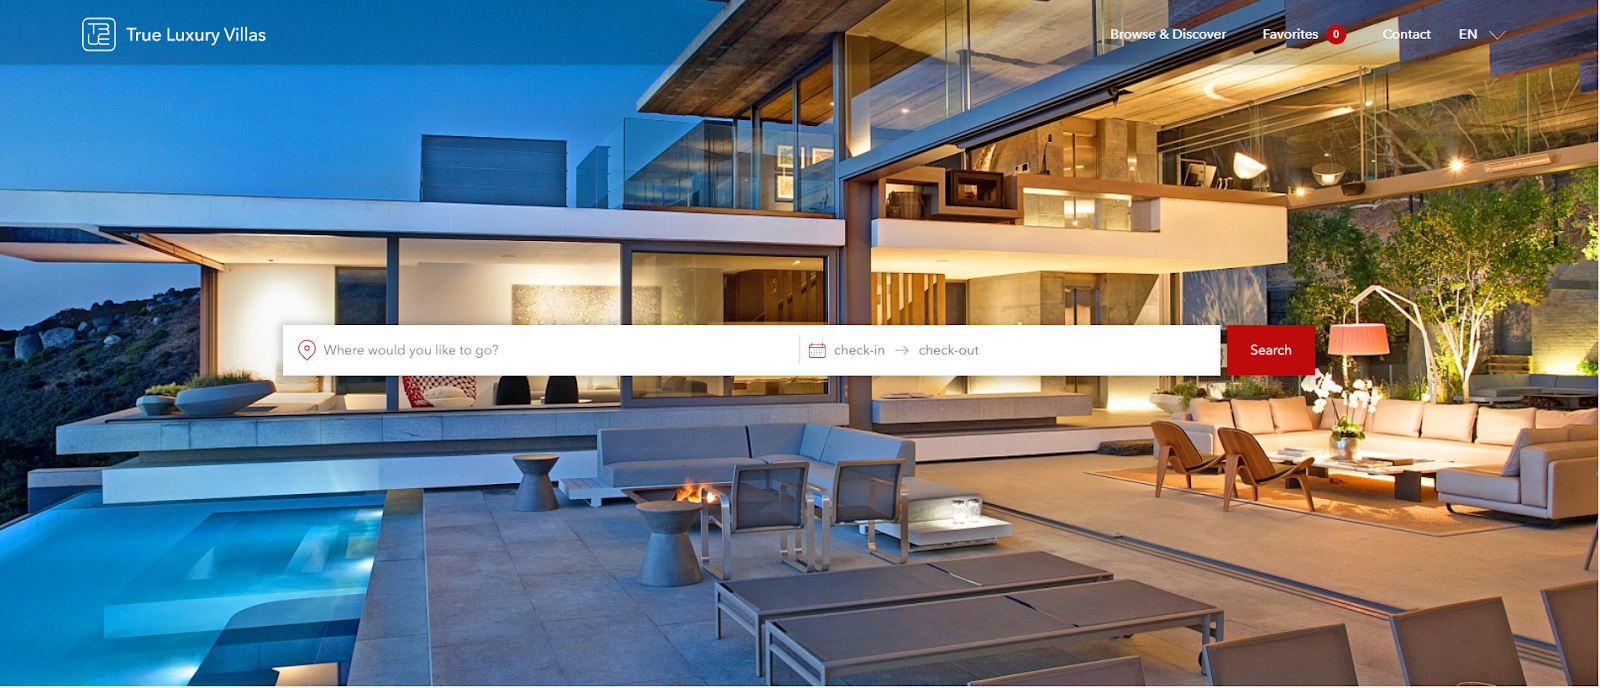 Screenshot of True Luxury Villa Website/